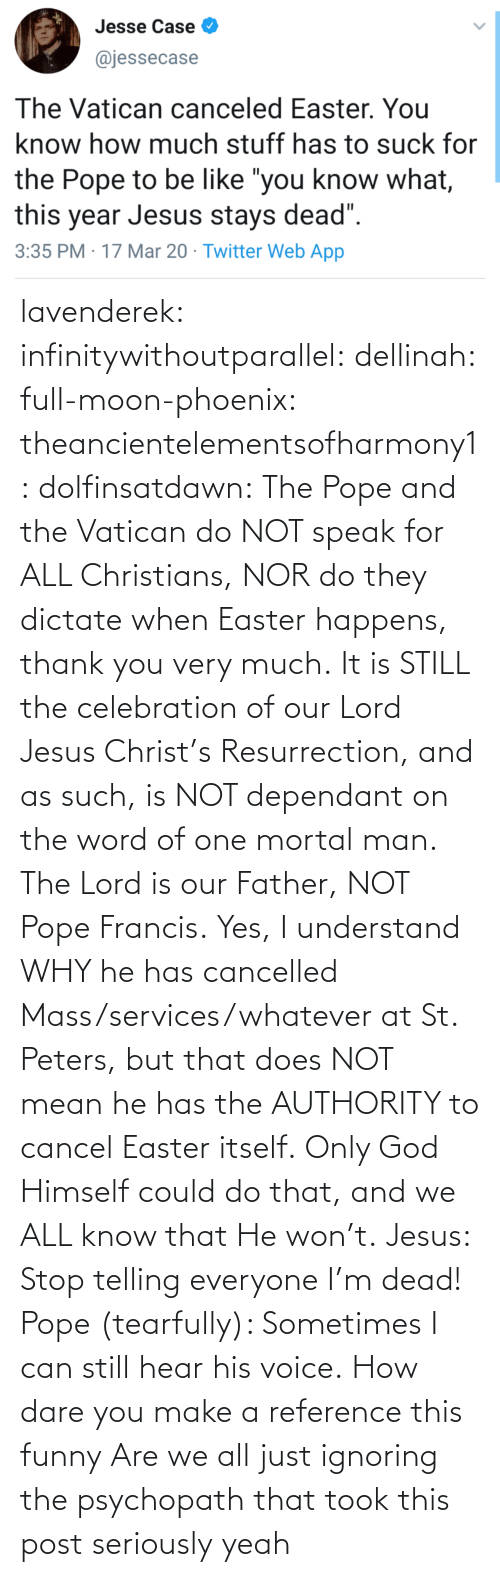 That He: lavenderek: infinitywithoutparallel:  dellinah:  full-moon-phoenix:   theancientelementsofharmony1:  dolfinsatdawn:    The Pope and the Vatican do NOT speak for ALL Christians, NOR do they dictate when Easter happens, thank you very much. It is STILL the celebration of our Lord Jesus Christ's Resurrection, and as such, is NOT dependant on the word of one mortal man. The Lord is our Father, NOT Pope Francis. Yes, I understand WHY he has cancelled Mass/services/whatever at St. Peters, but that does NOT mean he has the AUTHORITY to cancel Easter itself. Only God Himself could do that, and we ALL know that He won't.    Jesus: Stop telling everyone I'm dead! Pope (tearfully): Sometimes I can still hear his voice.    How dare you make a reference this funny    Are we all just ignoring the psychopath that took this post seriously     yeah